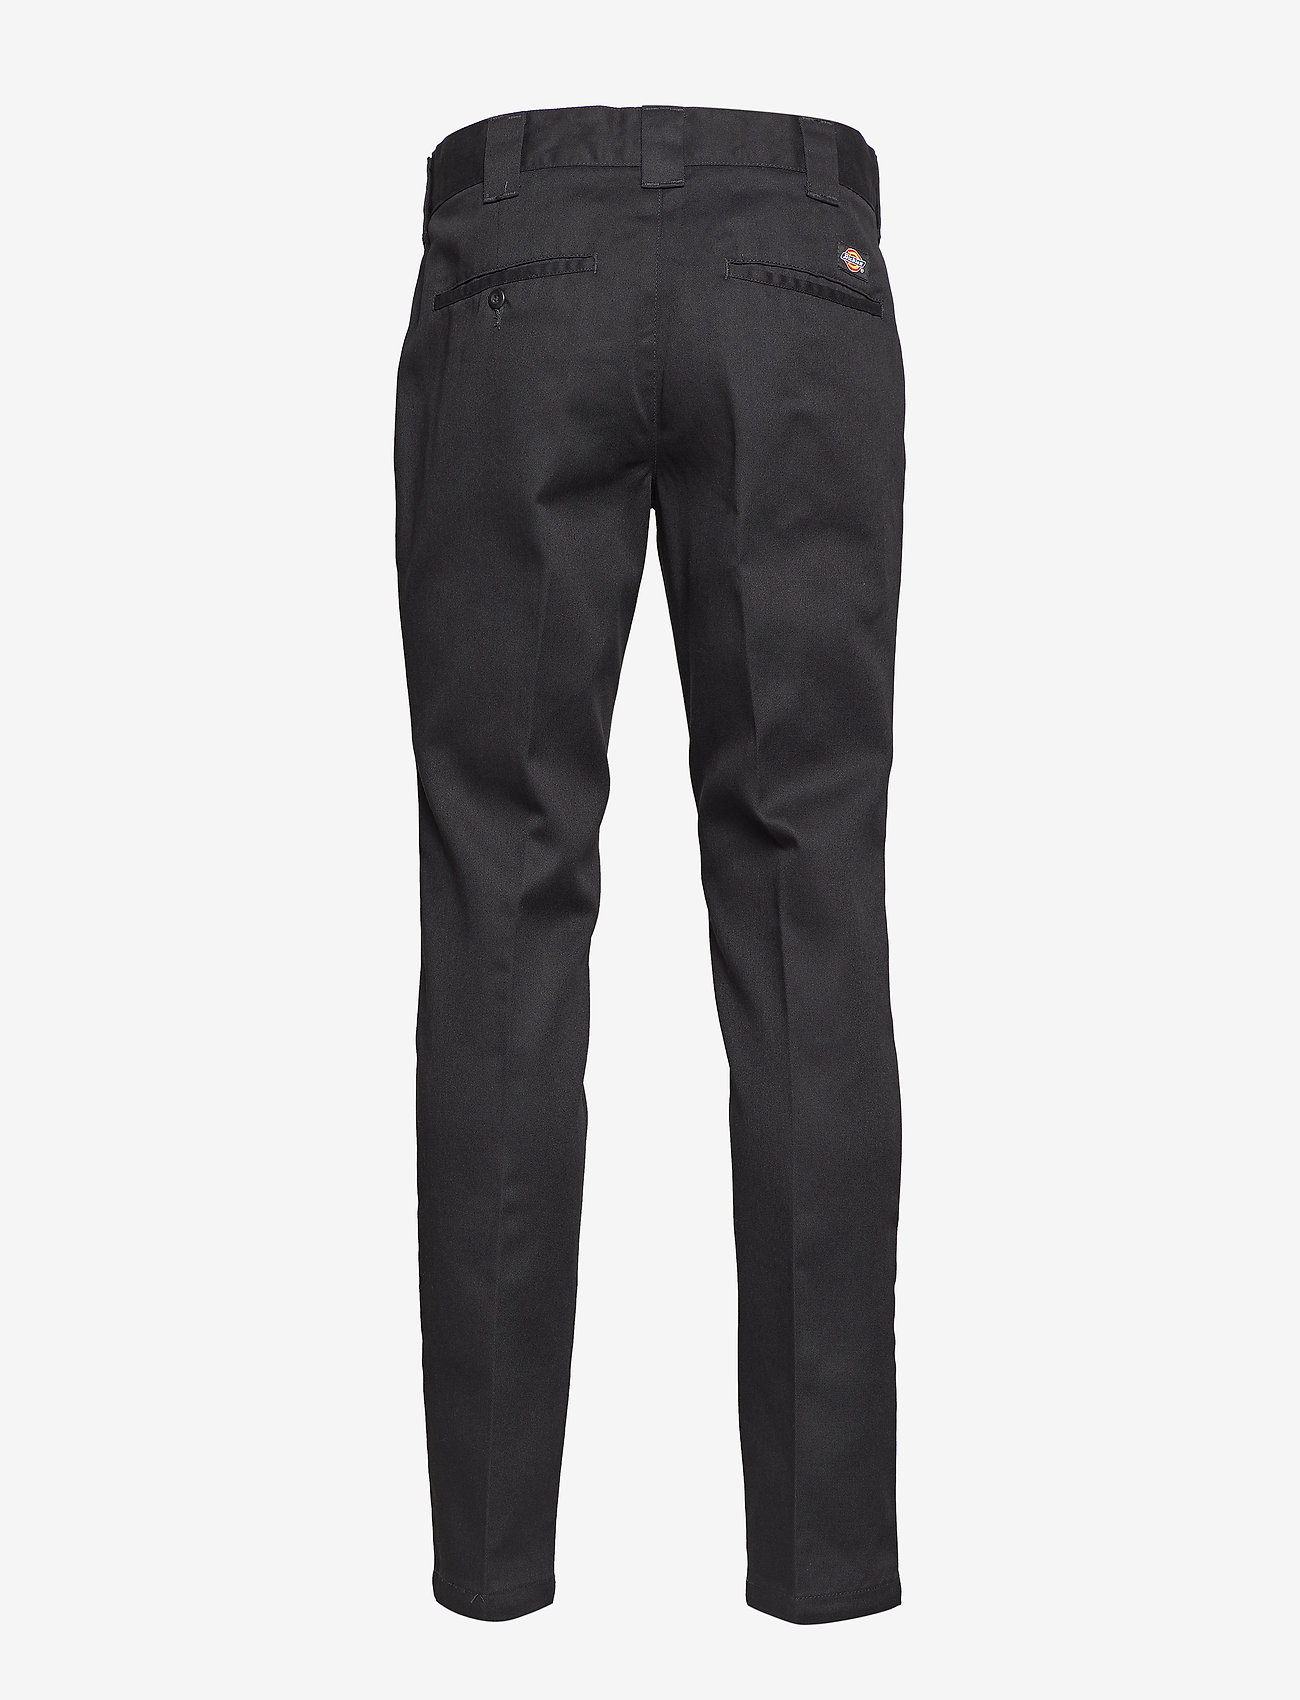 Dickies SLIM FIT WORK PANT - Bukser BLACK - Menn Klær